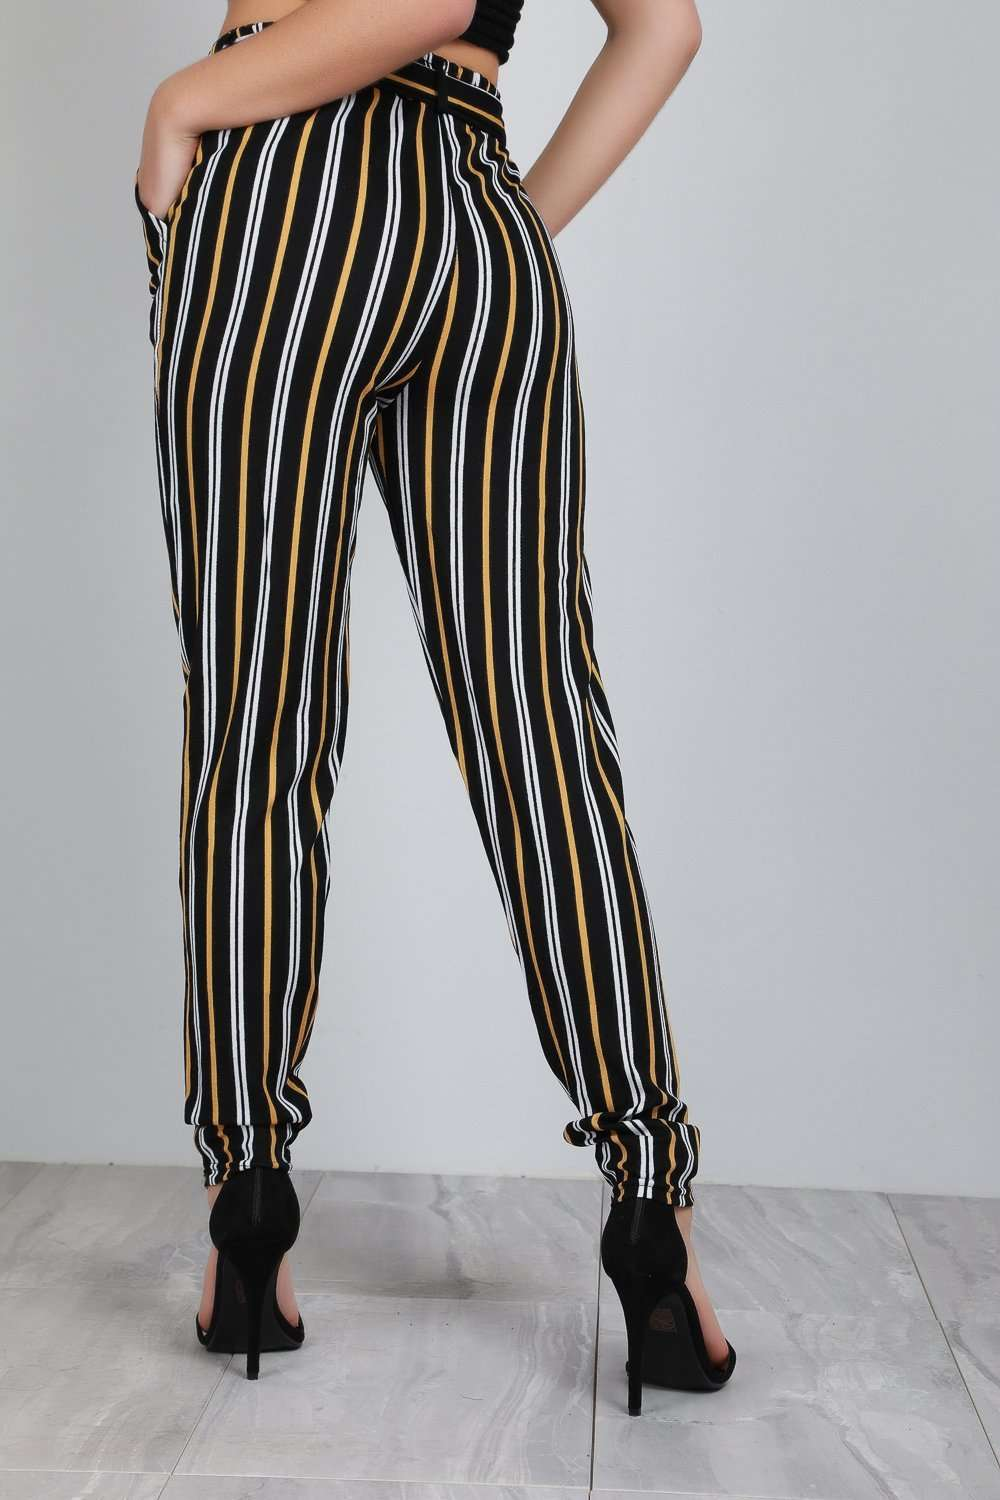 Jerika Mustard Striped Cigarette Belted Trousers - bejealous-com